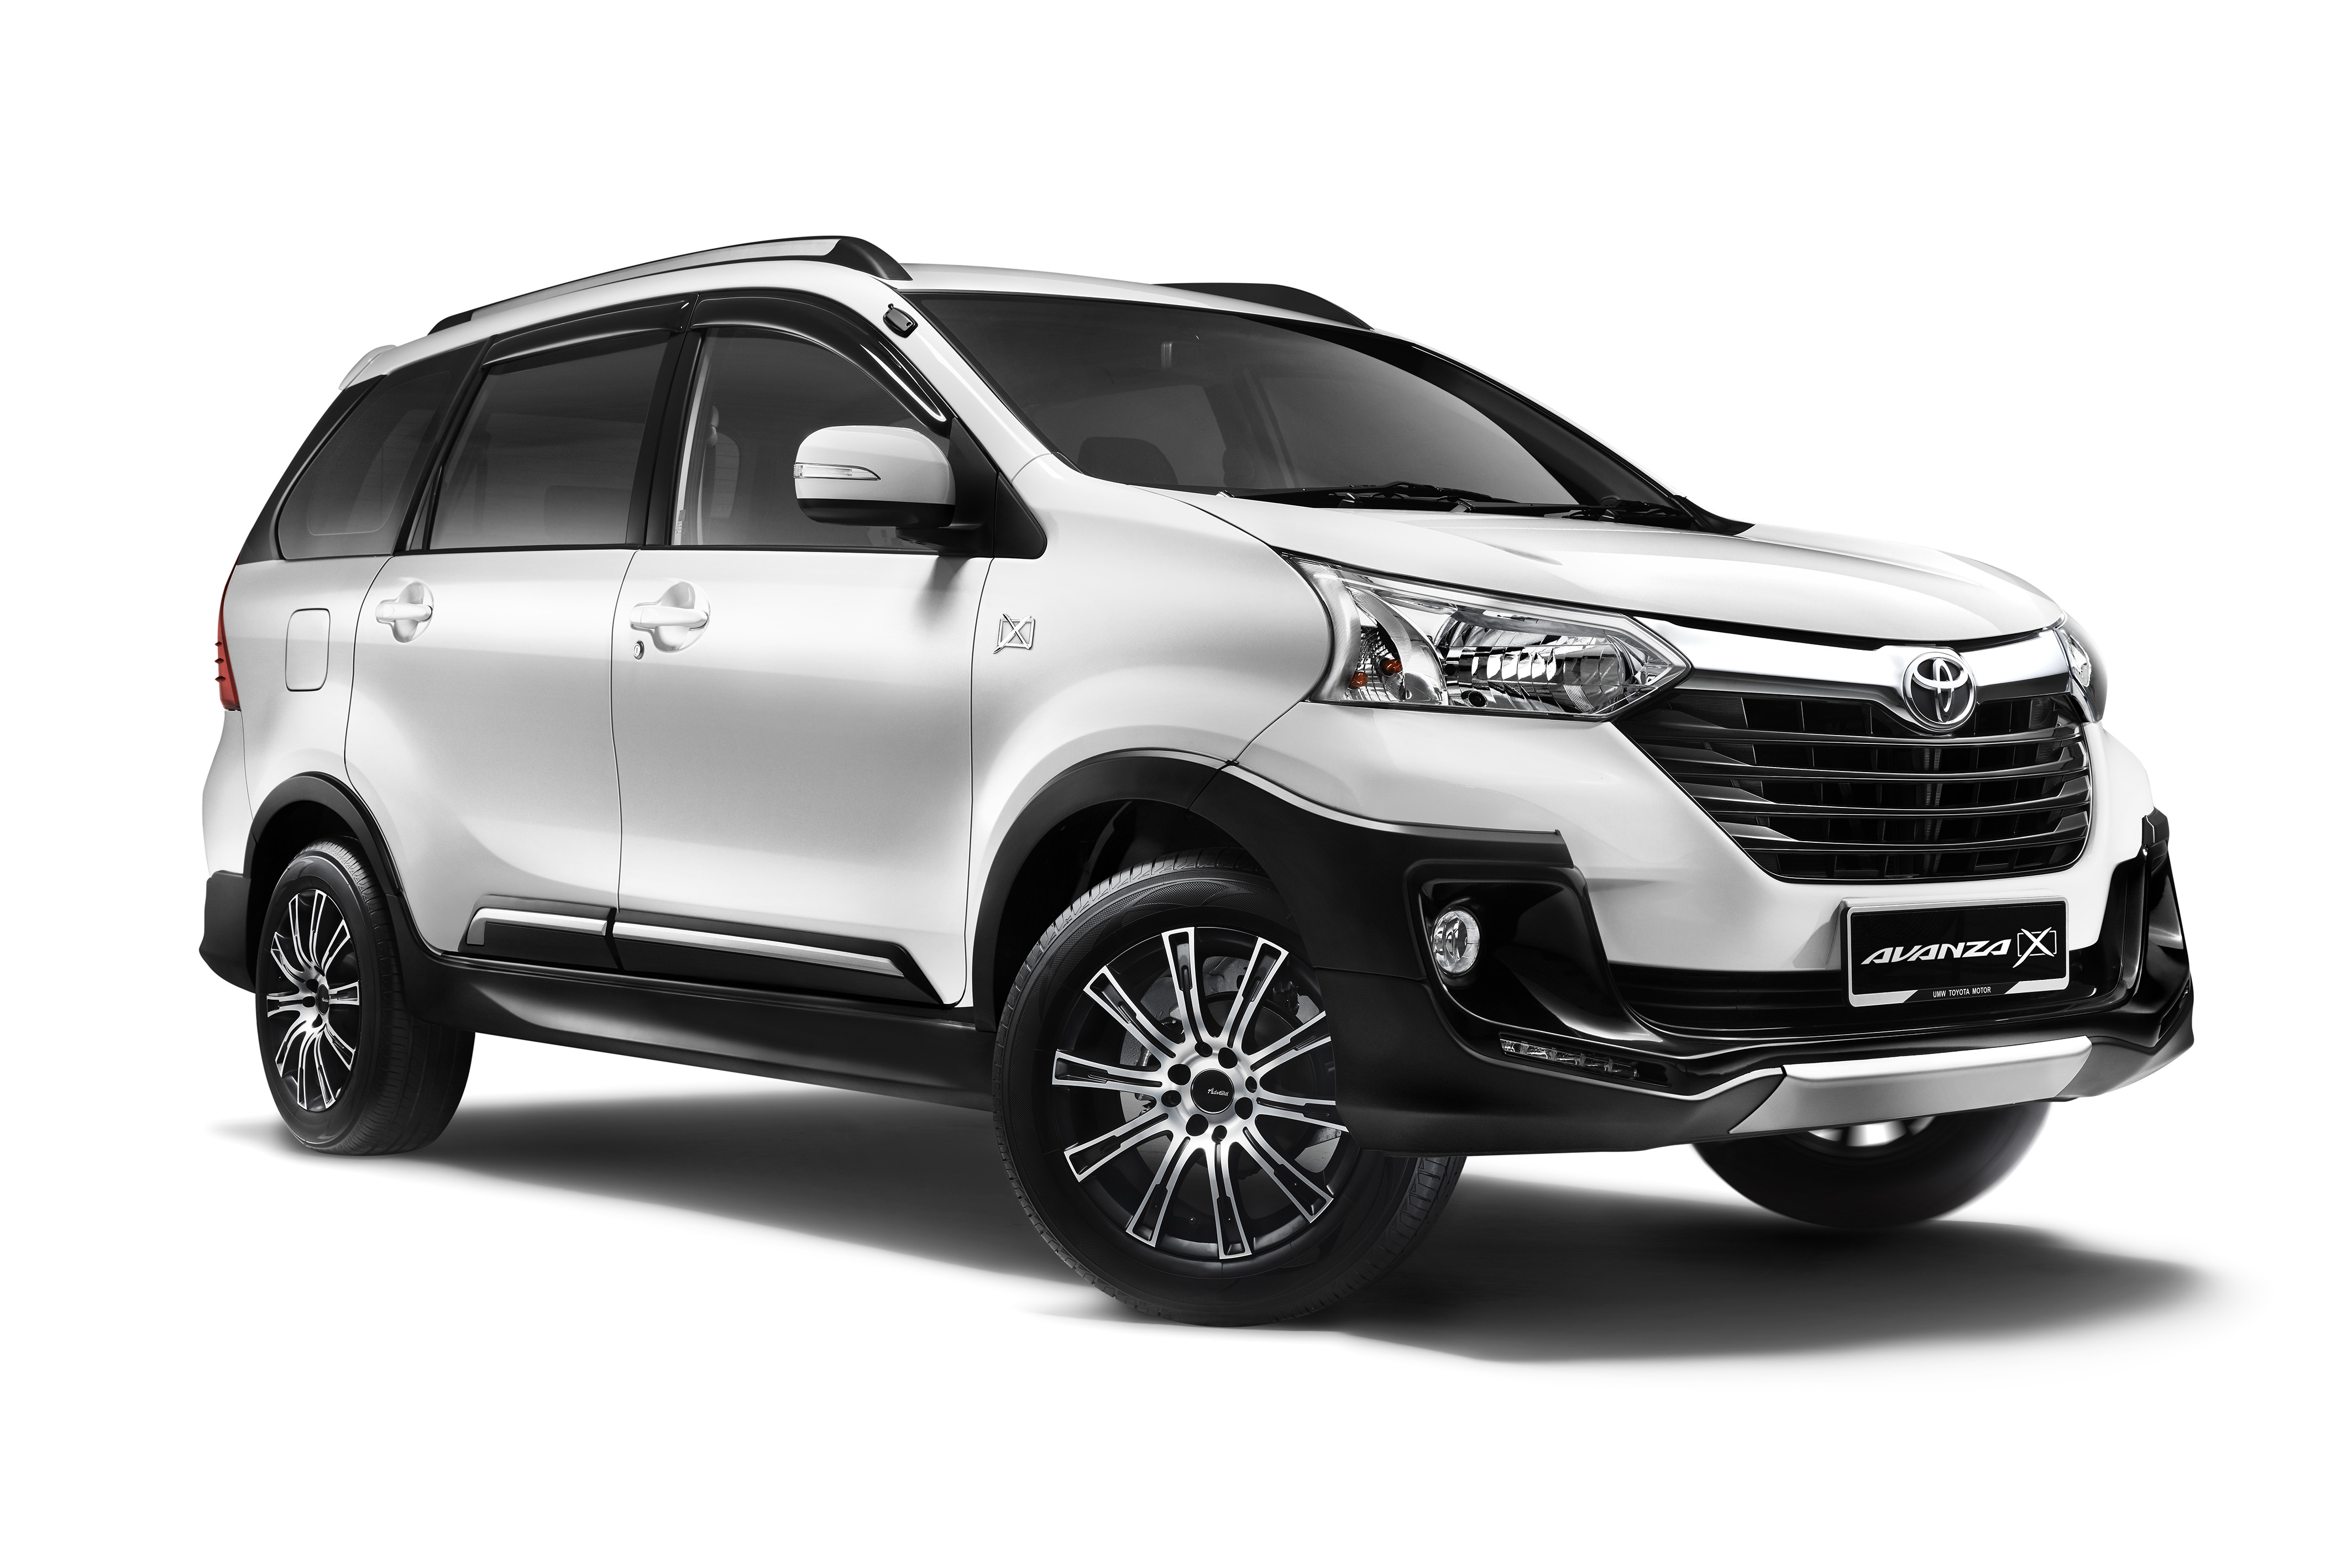 UMW Toyota Introduces Upgraded Avanza 1.5X